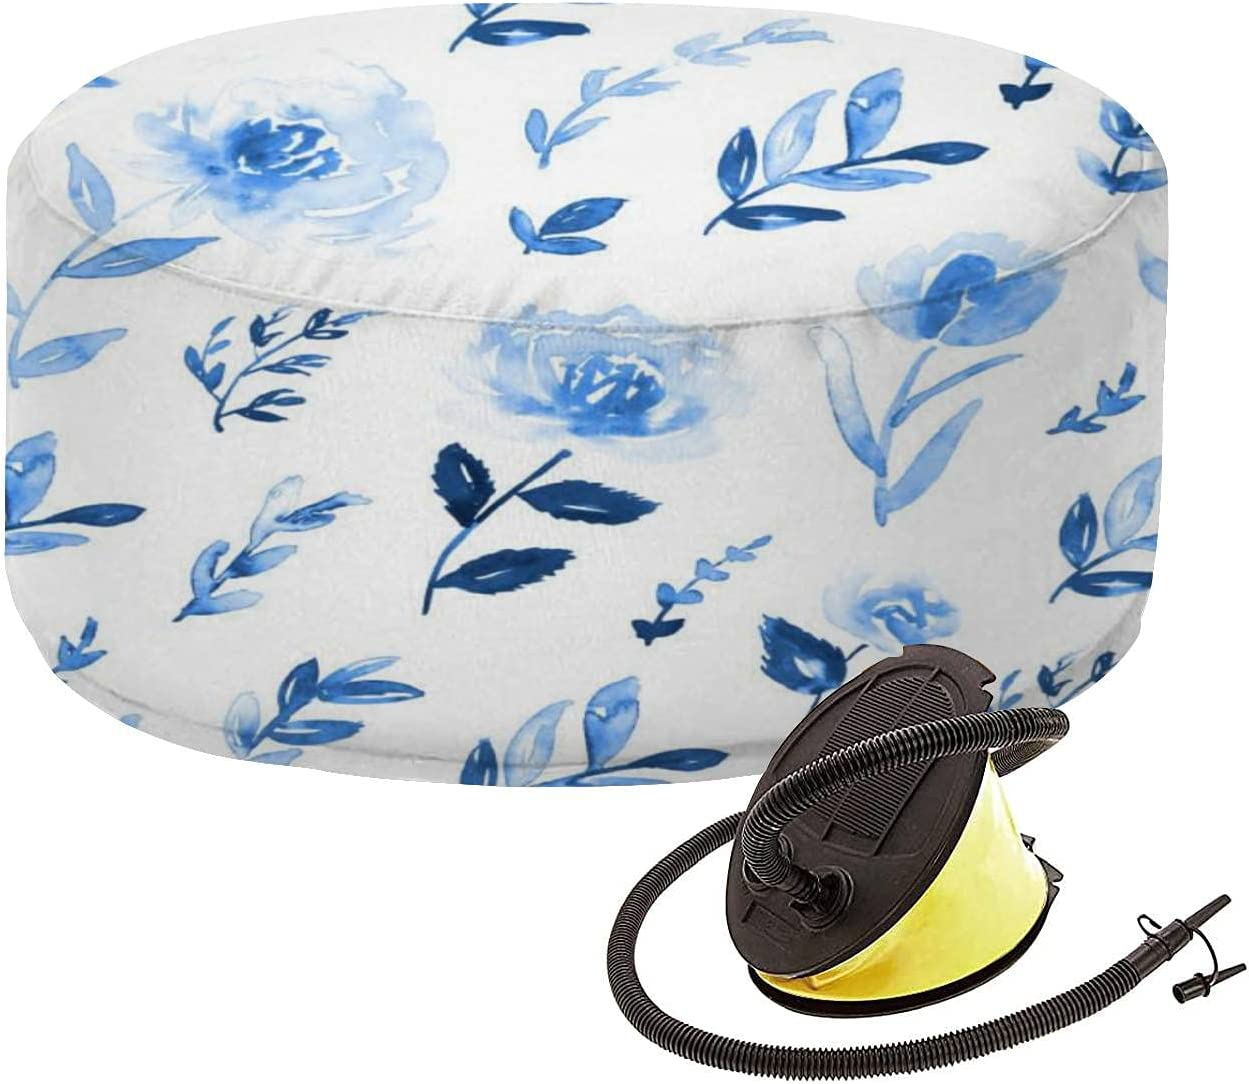 Indoor New Shipping Free Shipping Outdoor Inflatable Ottoman Ditsy Shades Phoenix Mall Print in Floral